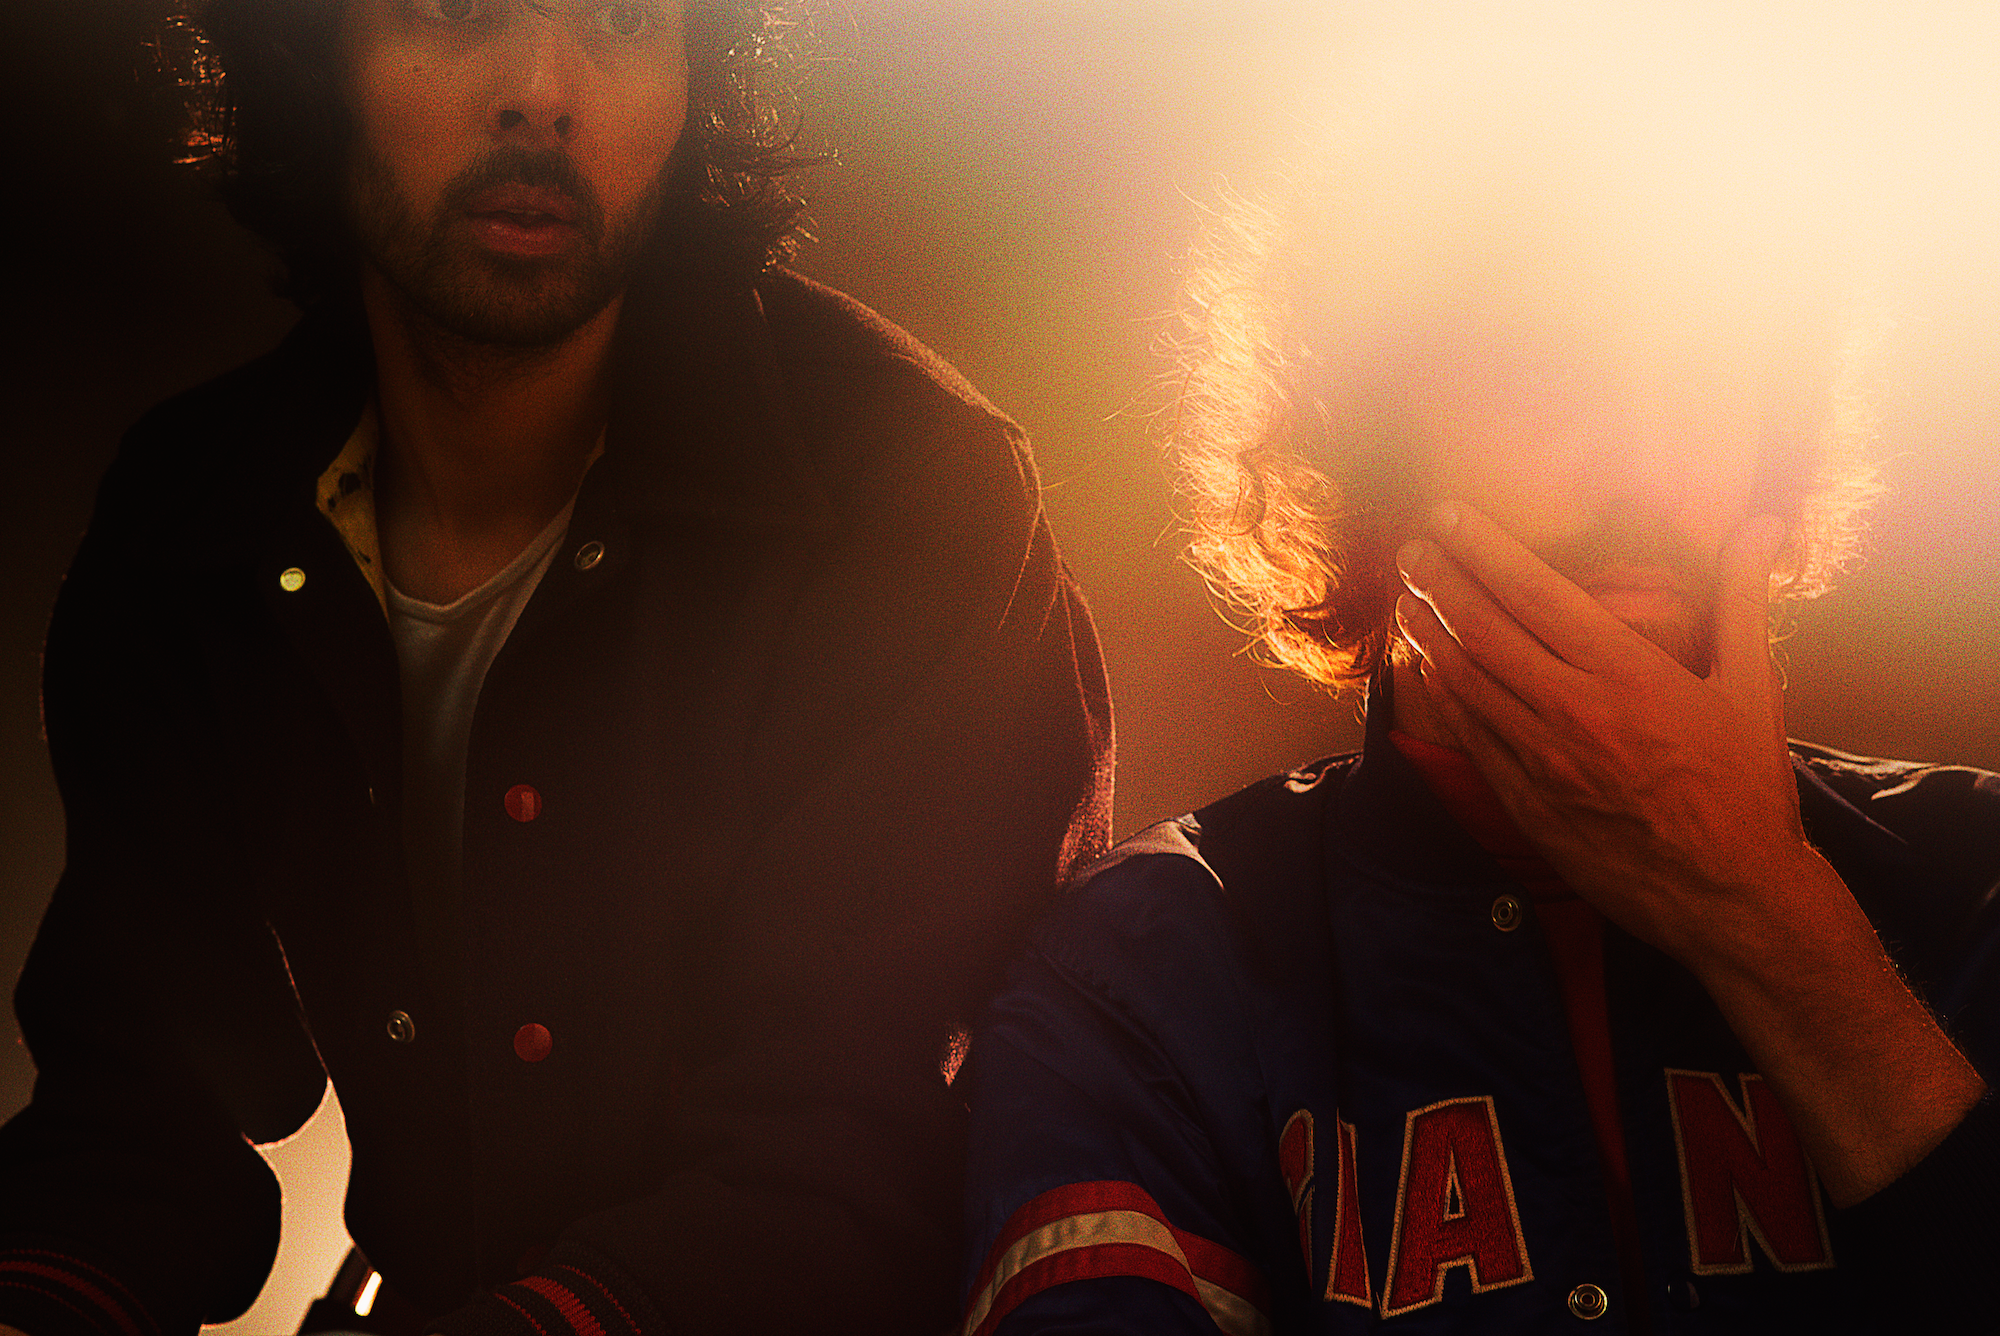 Justice Ed Banger Records